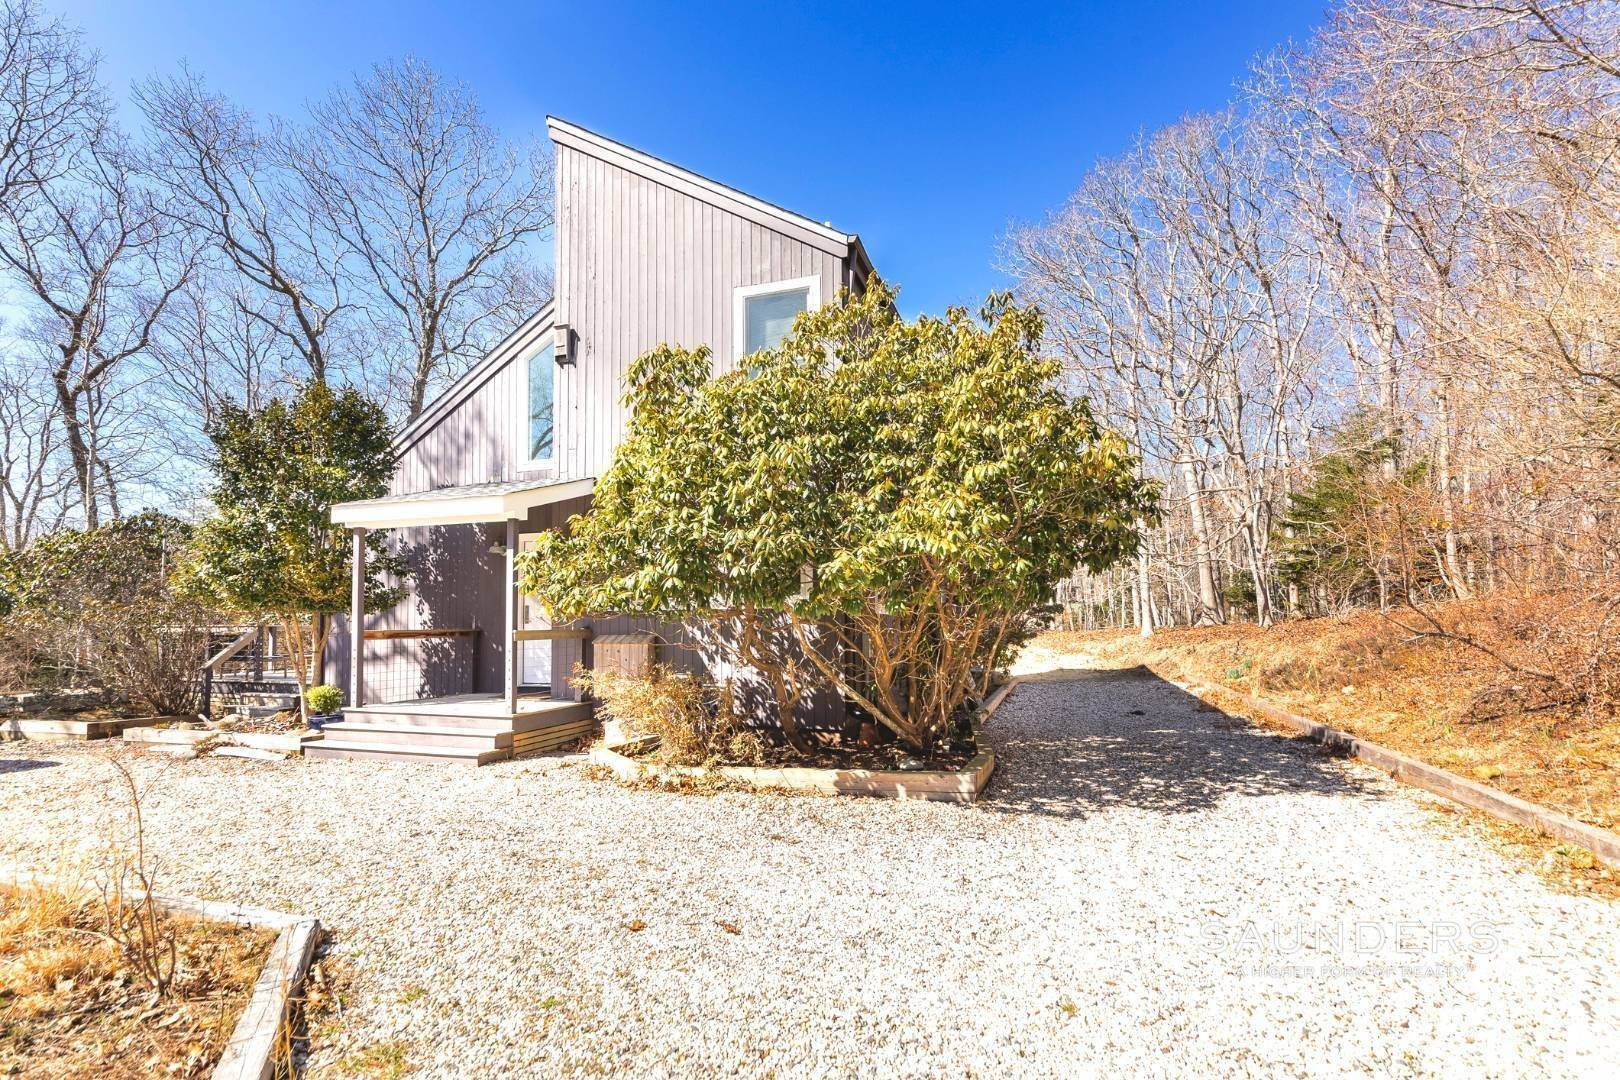 Single Family Homes for Sale at Montauk 2 Blocks To The Ocean 33 Davis Drive, Montauk, East Hampton Town, NY 11954